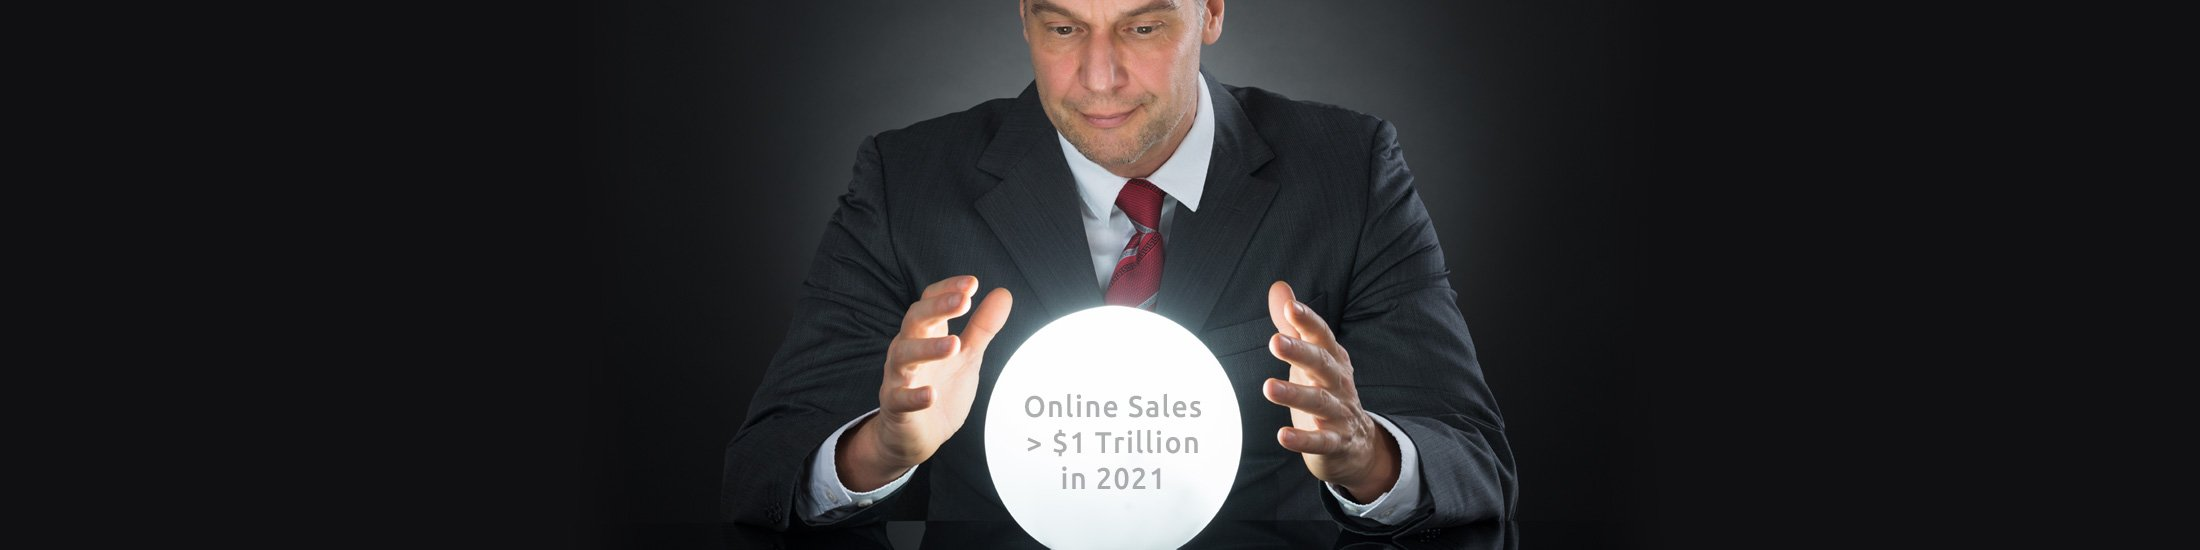 NRF Revises Prediction: Online Sales to Exceed $1 Trillion in 2021